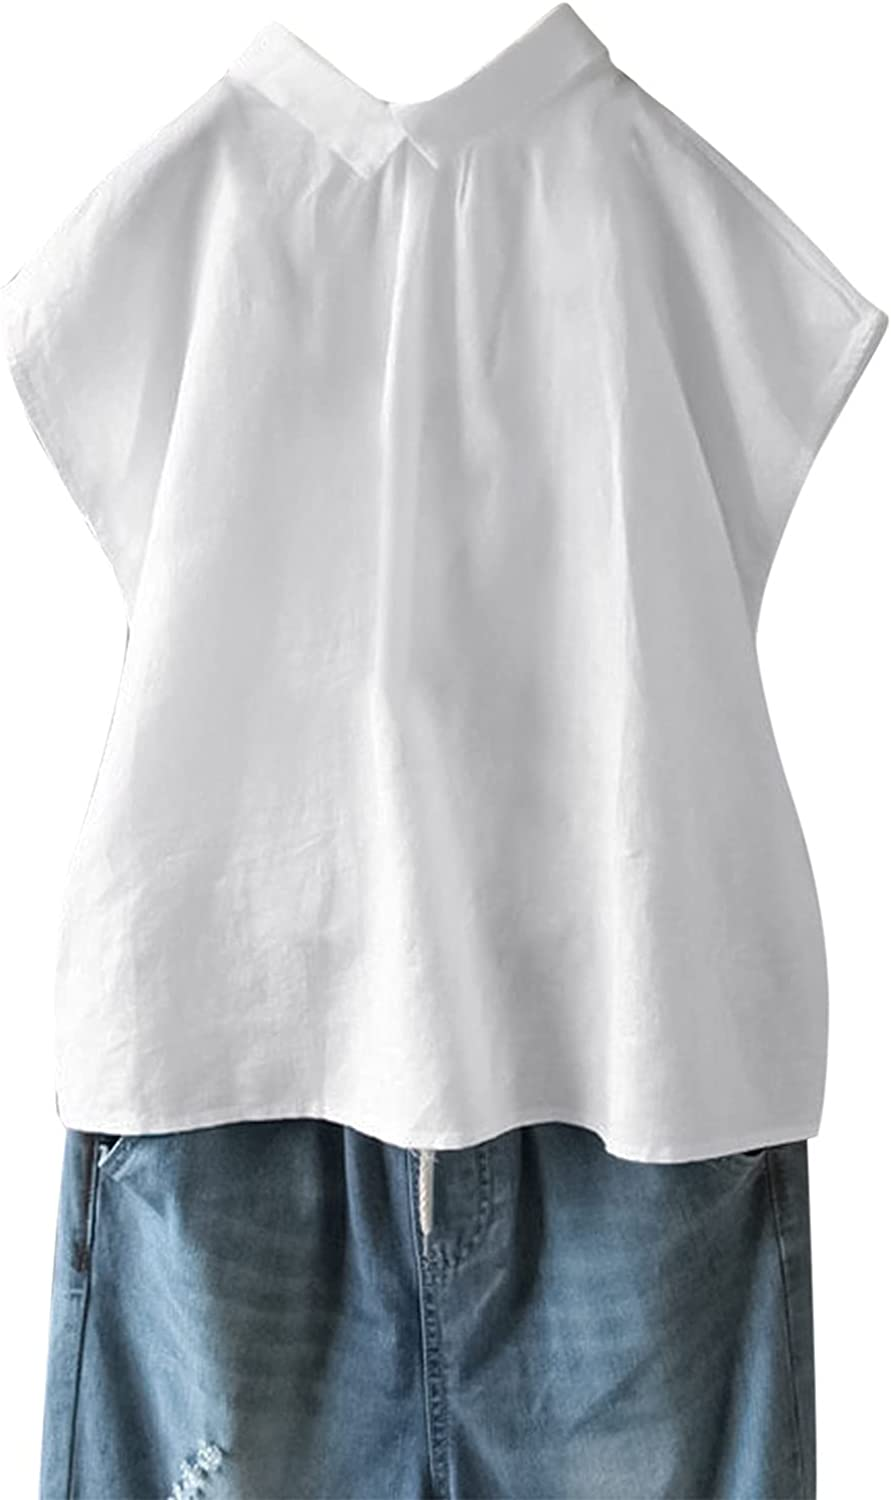 Fankle Womens Summer Linen Tunic Shirt with Pocket Loose Boatneck Short Sleeve Casual Button Down Beach Long Pullover Blouse